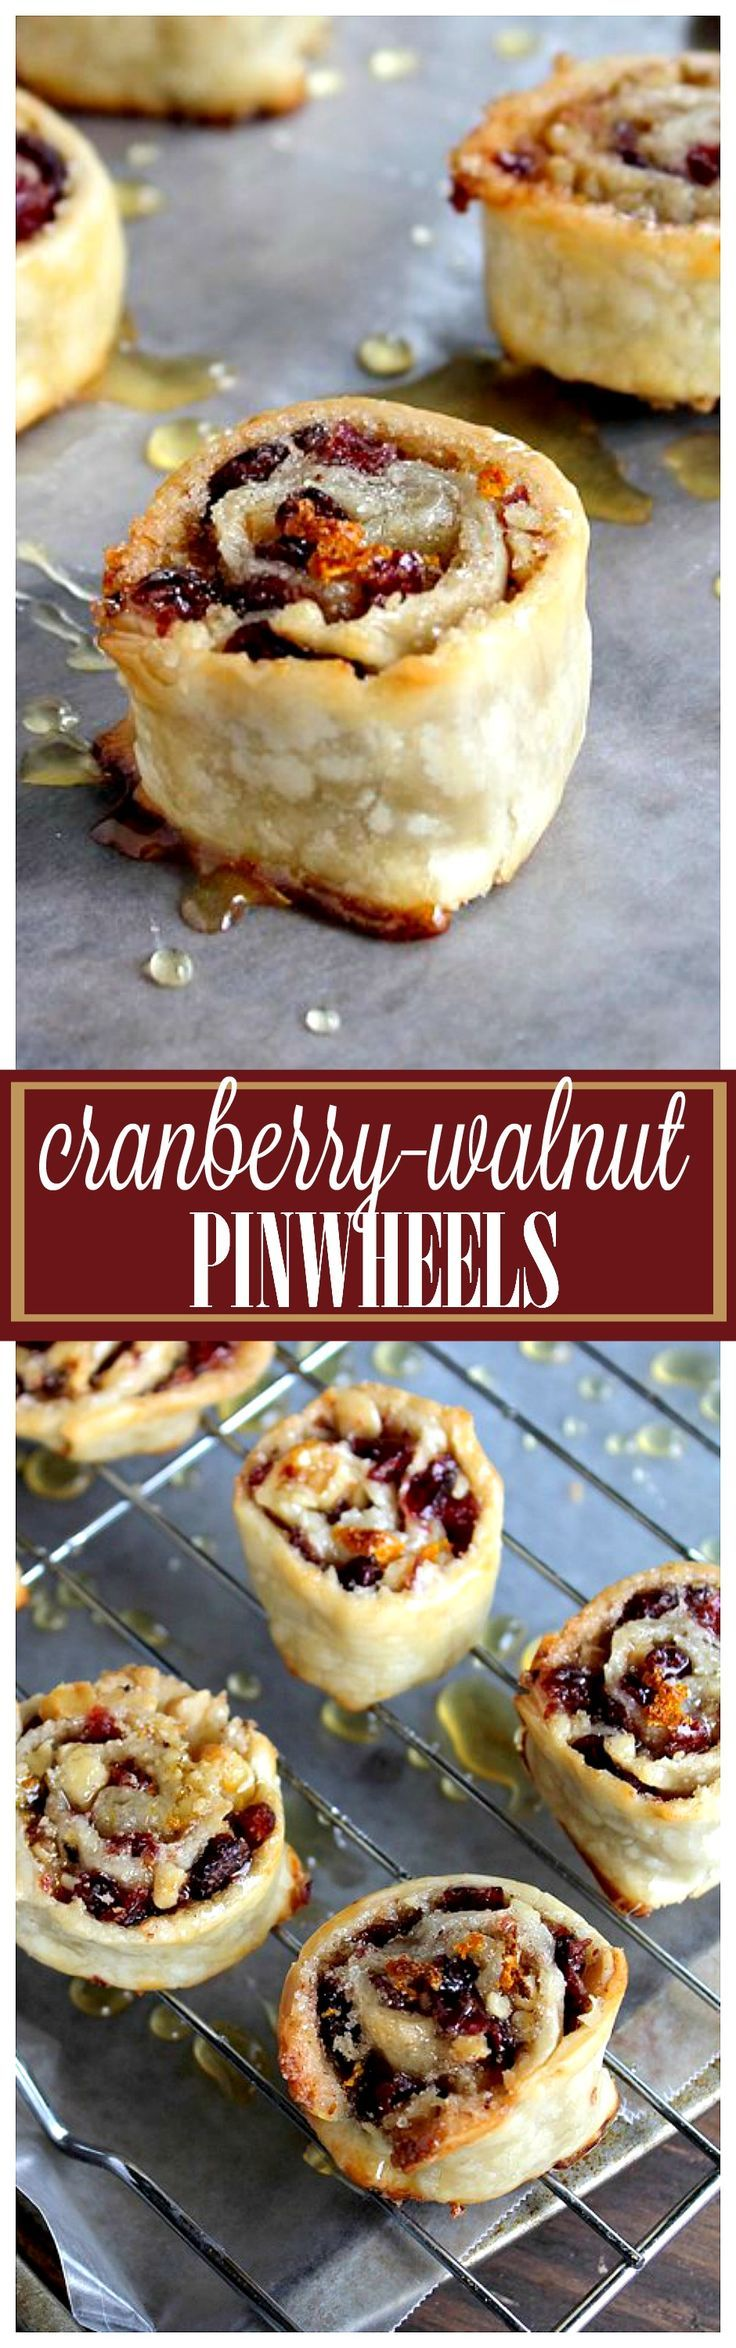 Cranberry and Walnut Pinwheels - My most asked for and loved Holiday recipe!